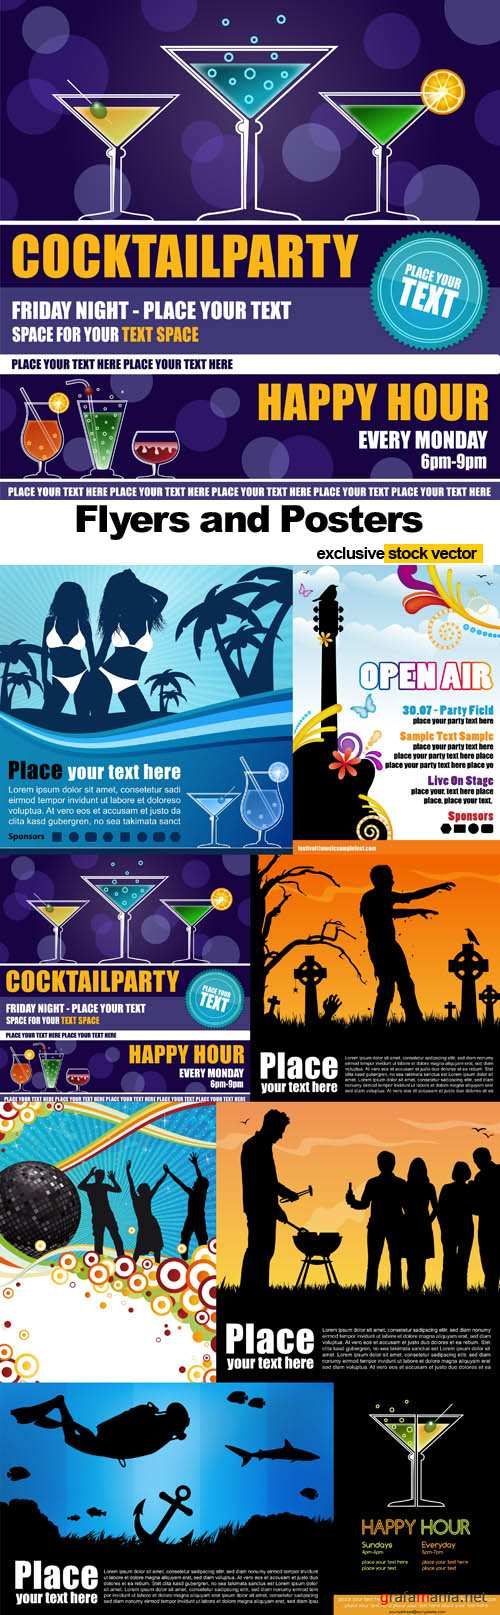 Flyers and Posters - Vector Stock